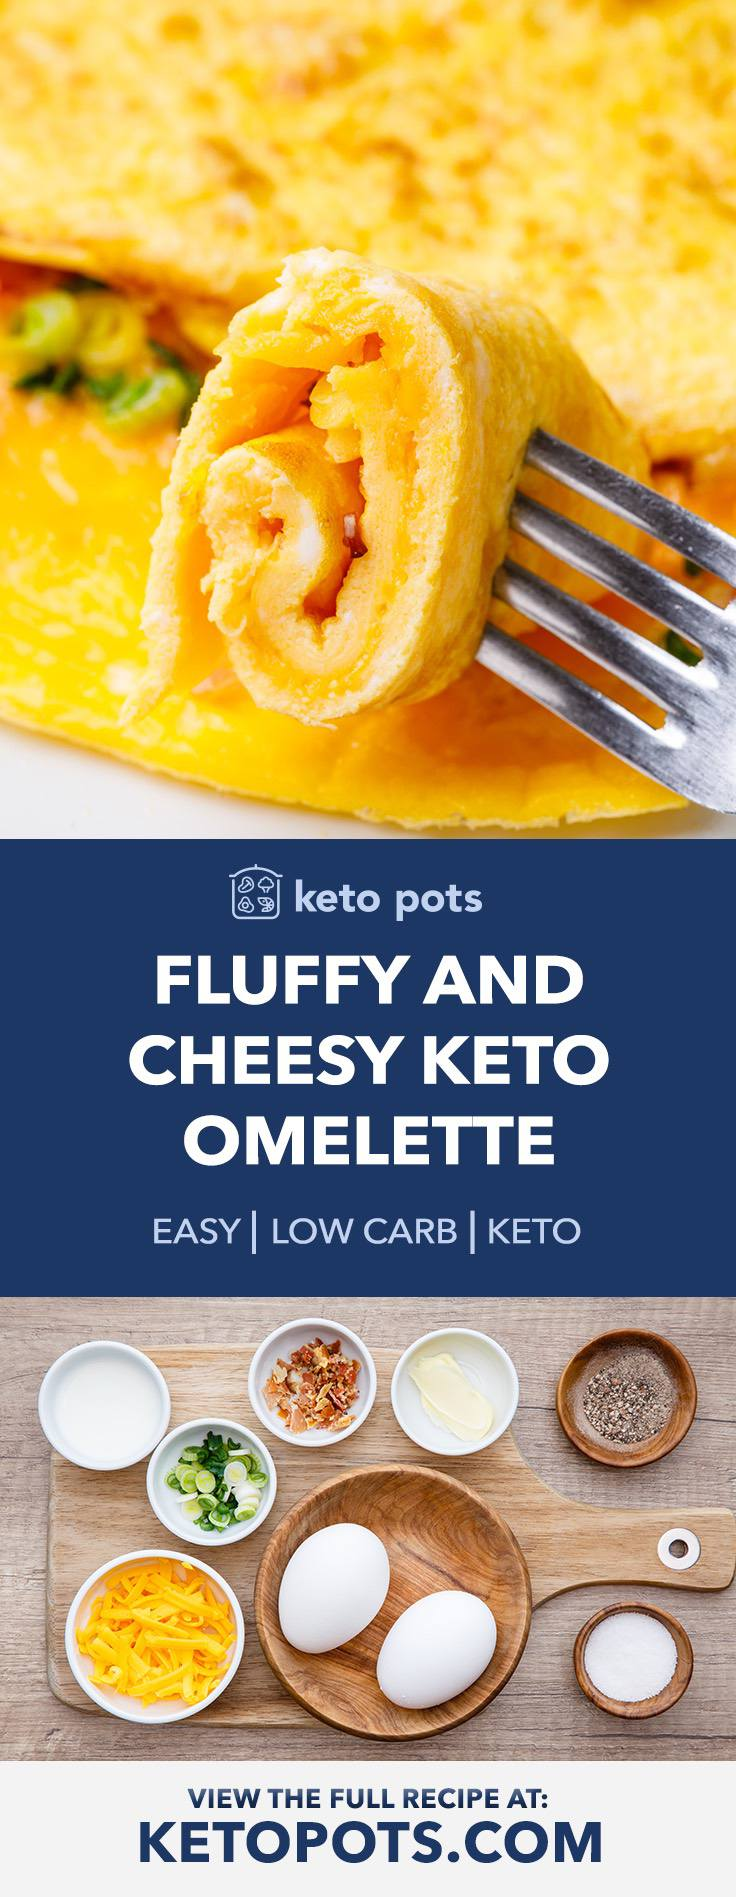 Fluffy And Cheesy Keto Omelette with Scallions and Bacon